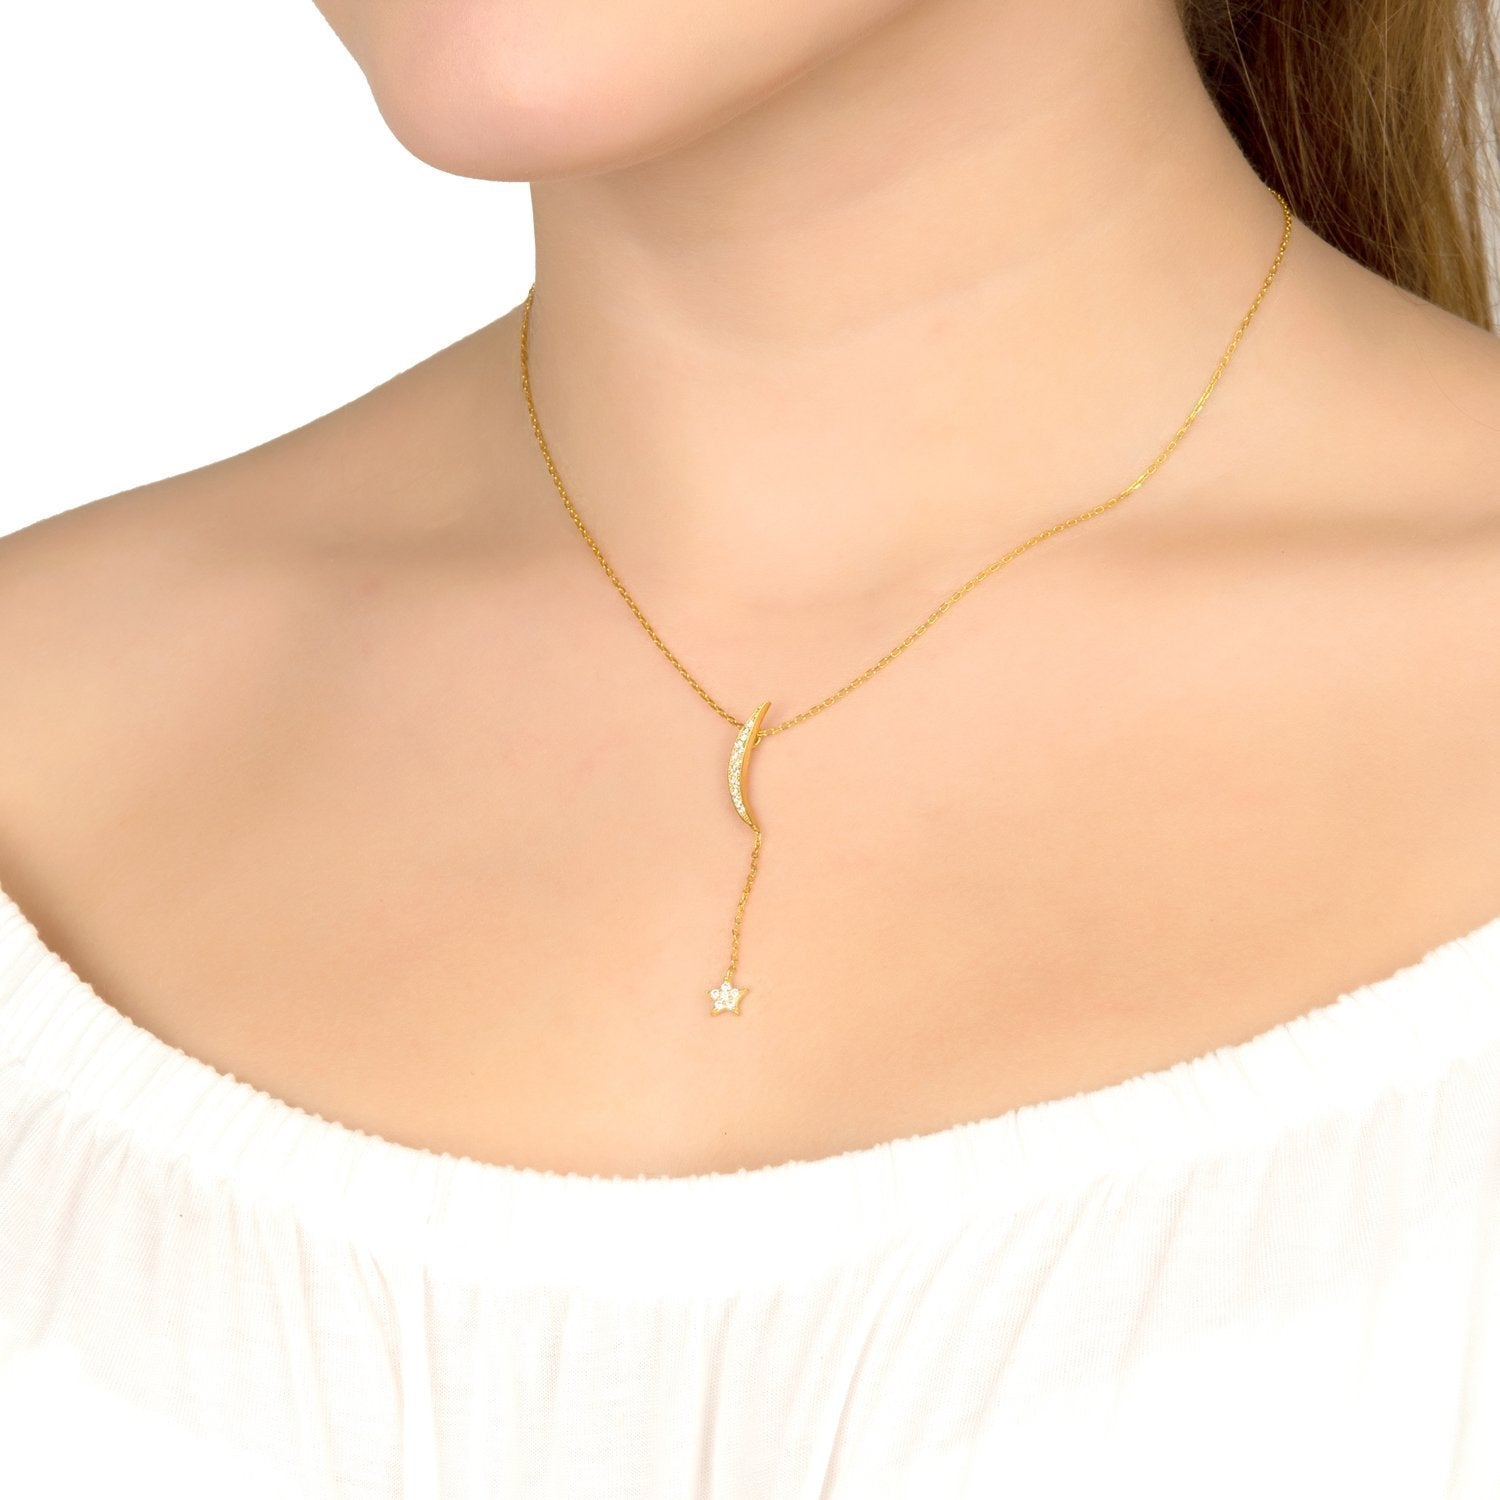 Premium Moon and Star Necklace 22ct Gold - Studio Cosmica